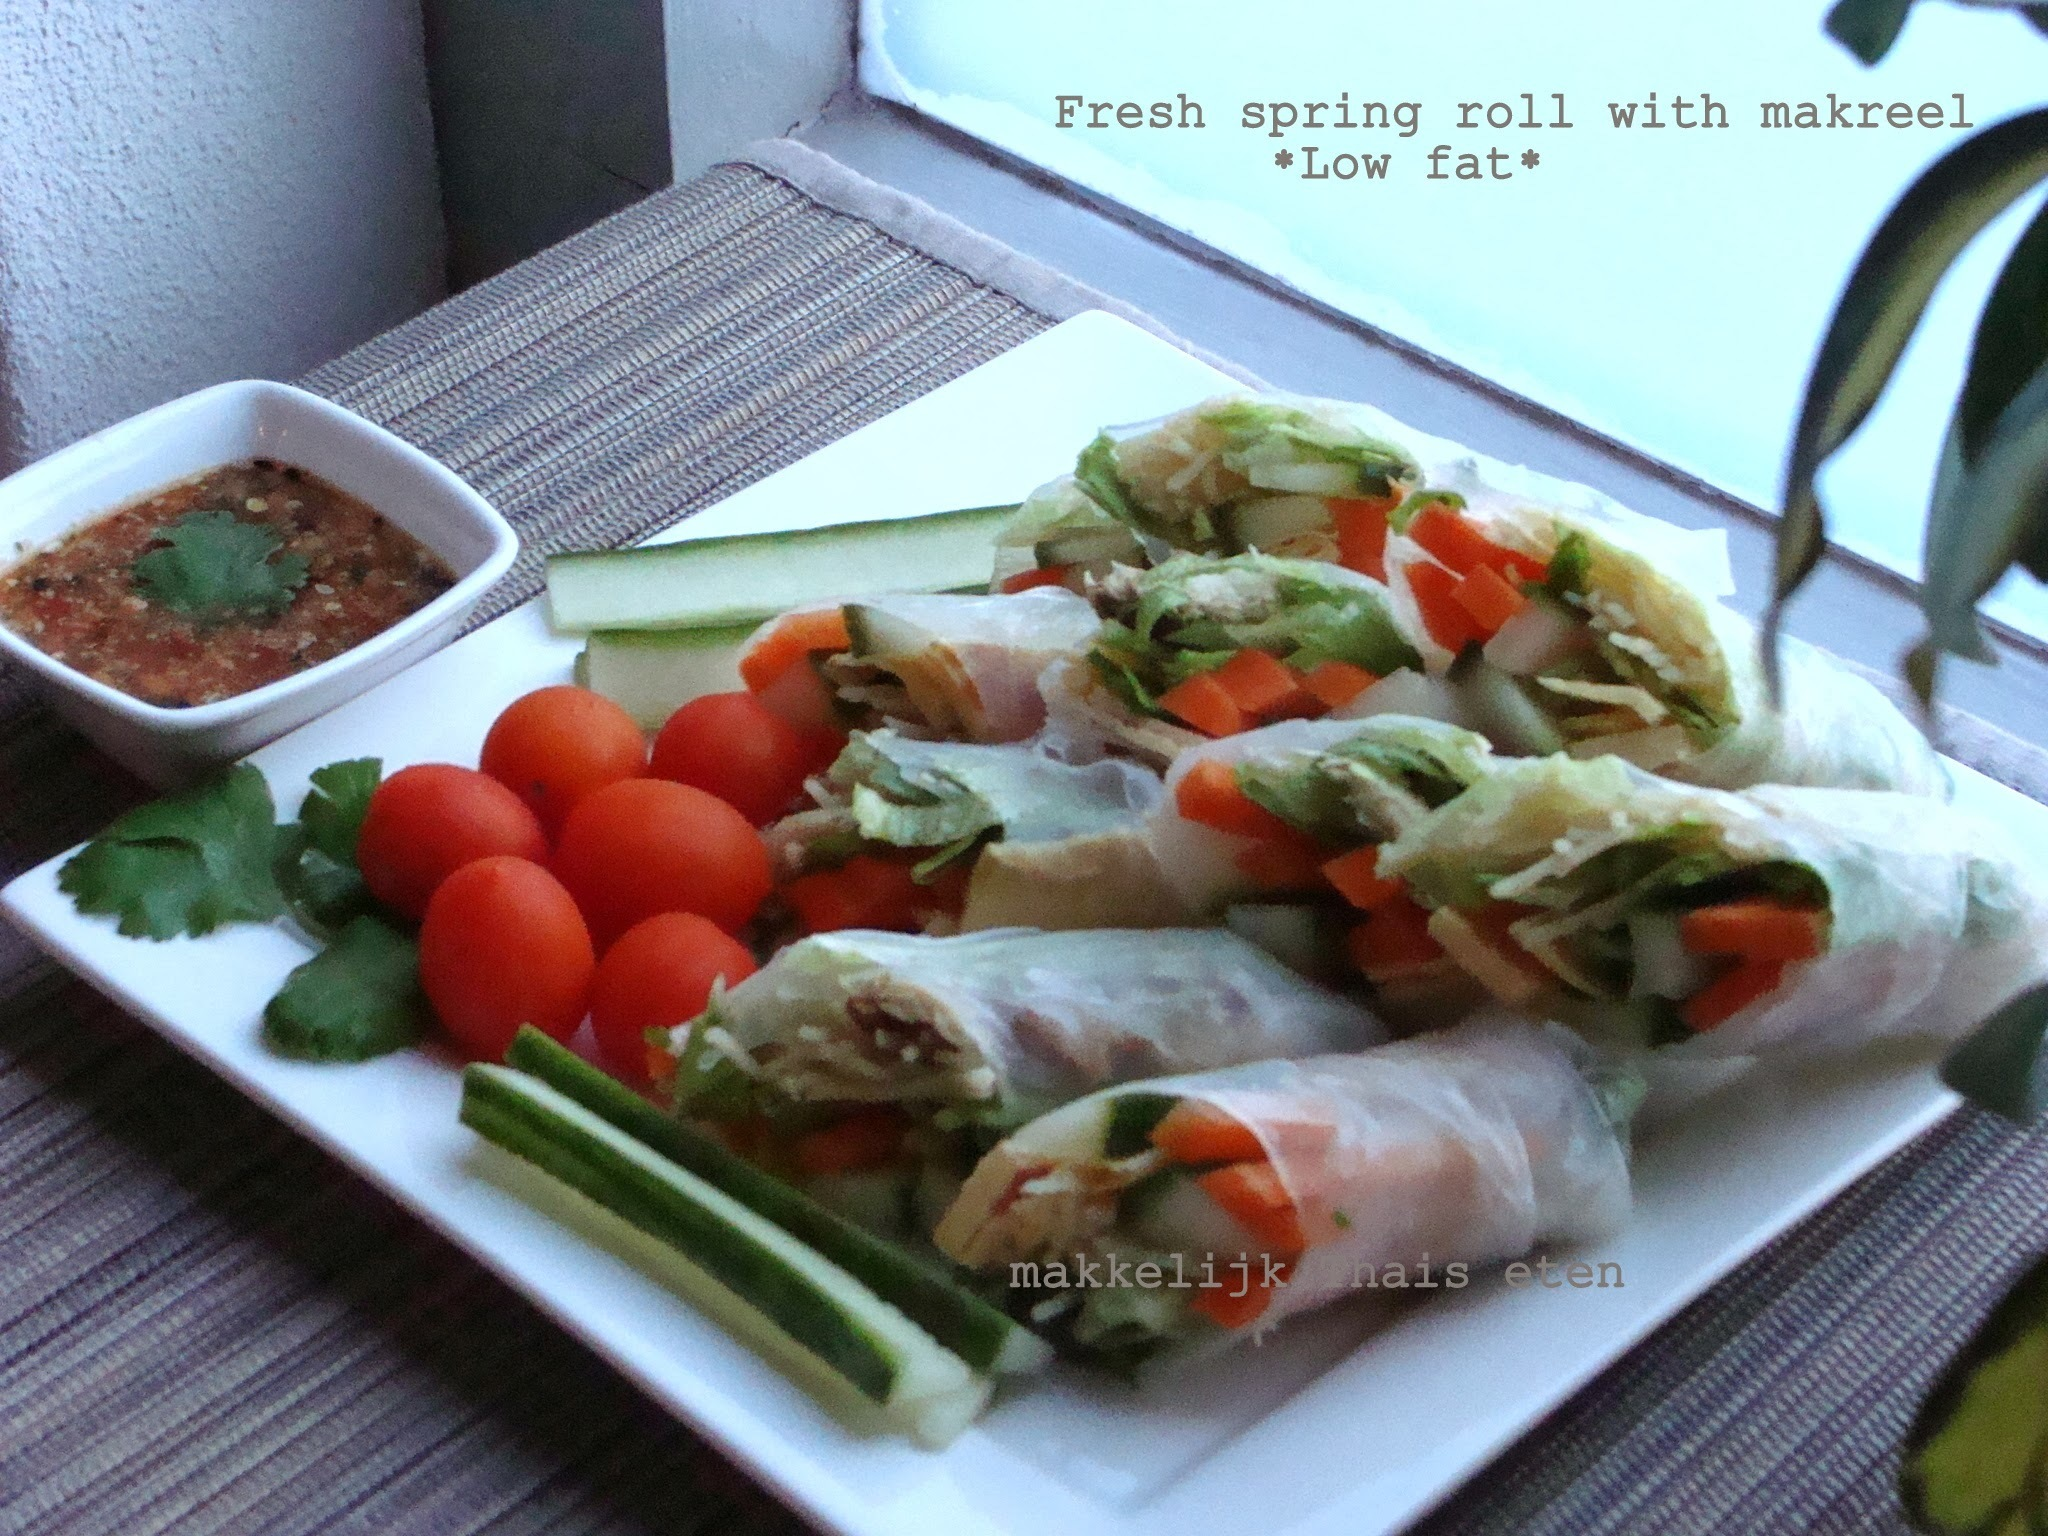 Low fat Fresh spring roll with makreel